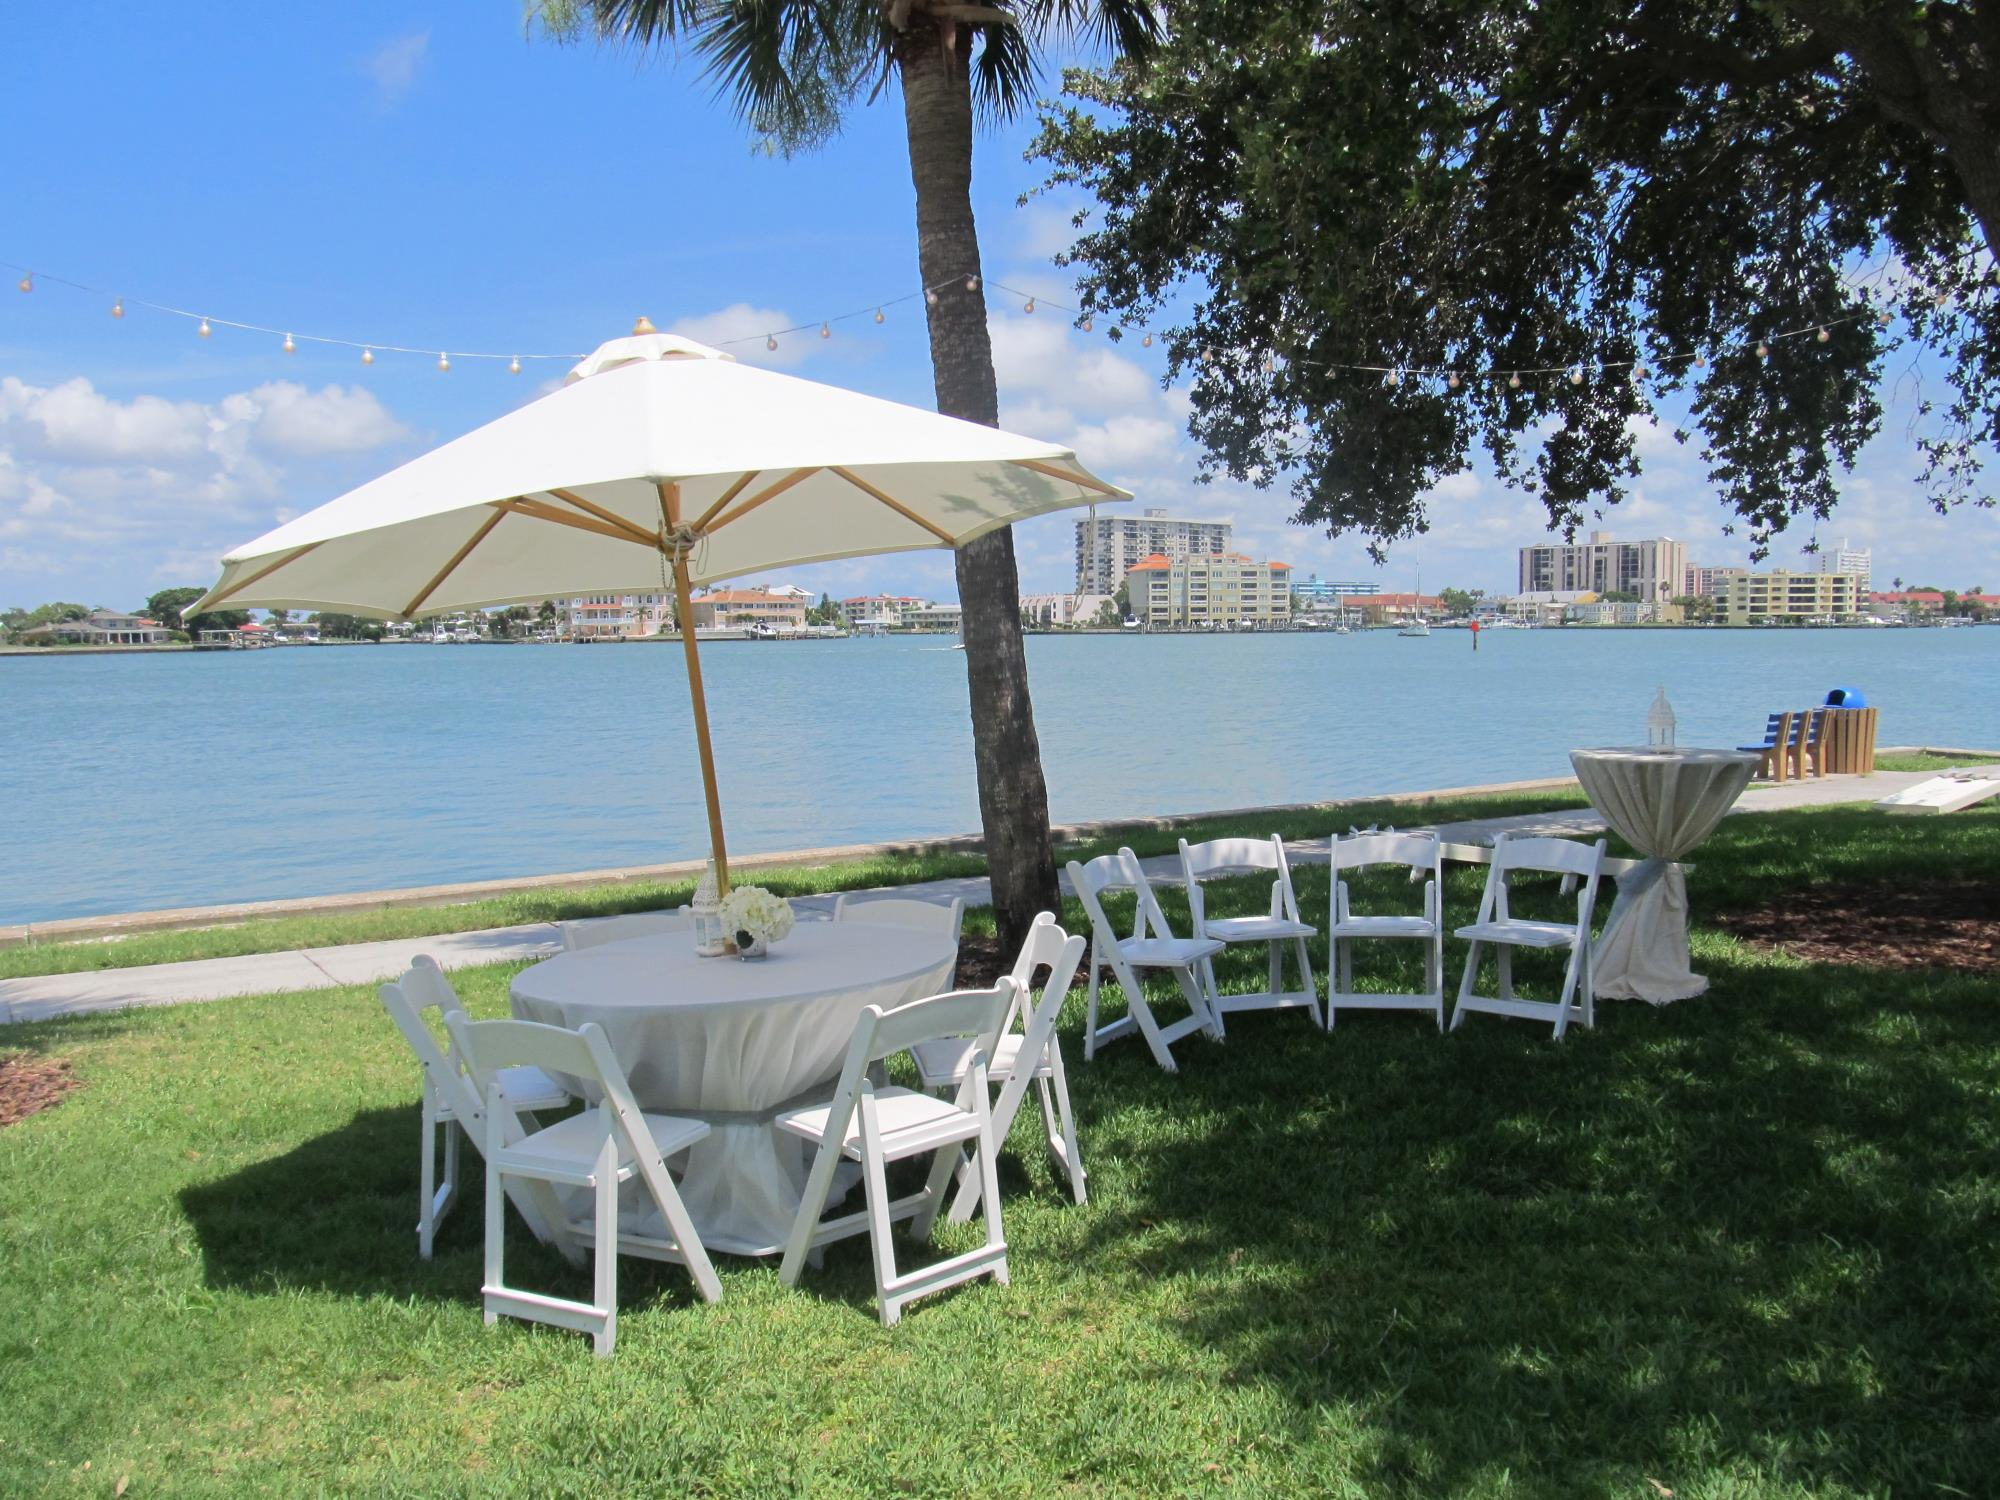 Image of the beach complex chairs and tables overloooking the inland waterway